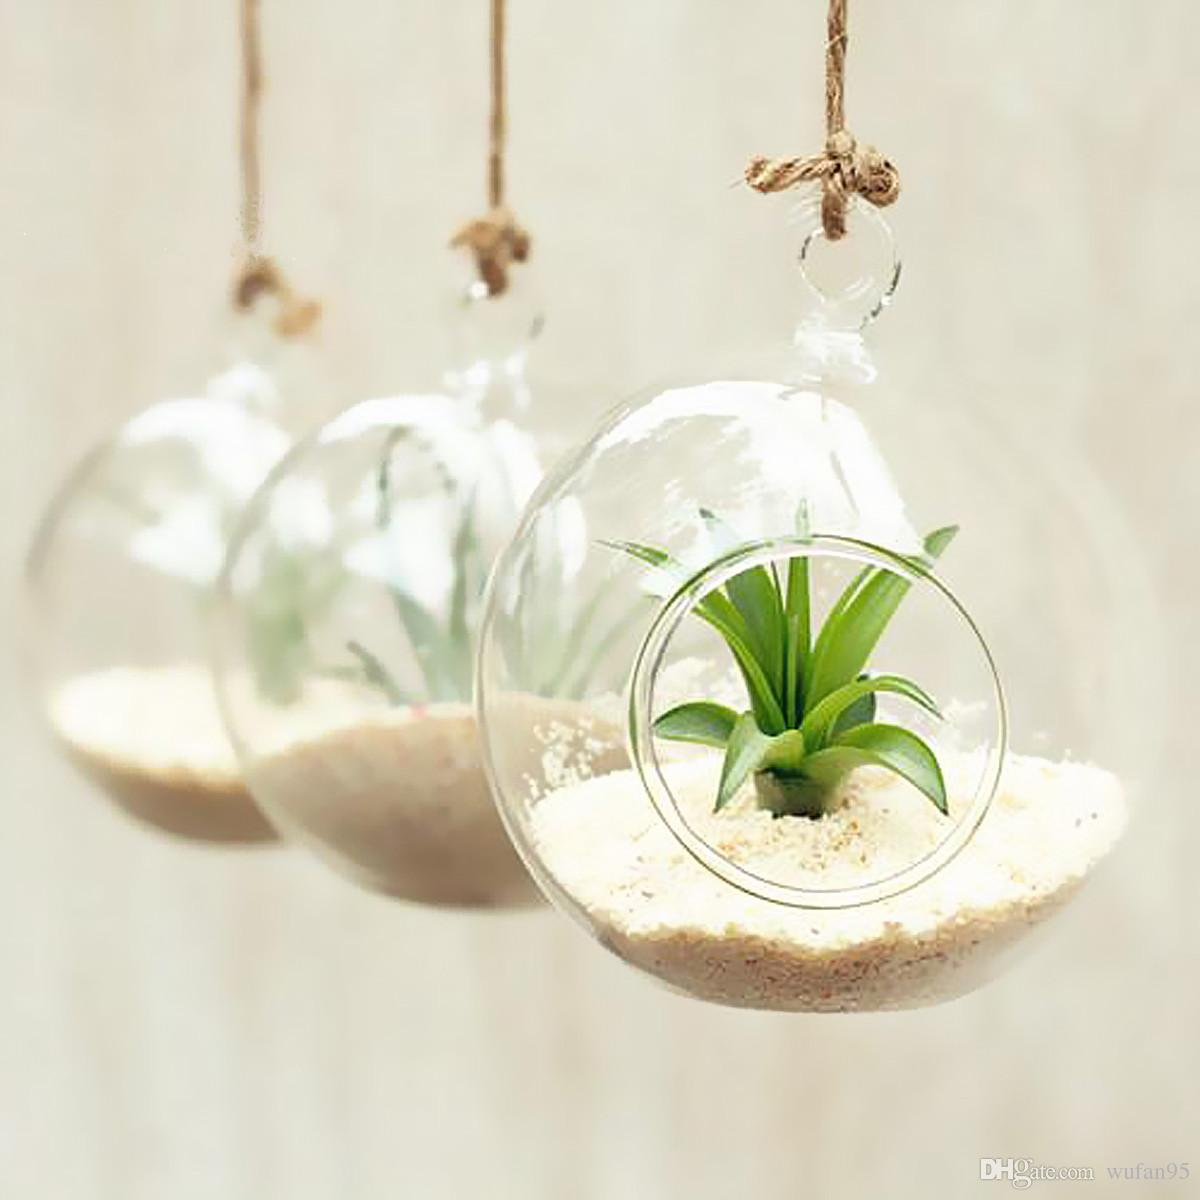 Crystal hanging planter vase clear glass terrarium round ball crystal hanging planter vase clear glass terrarium round ball flower diameter 10cm 4 inch home office reviewsmspy